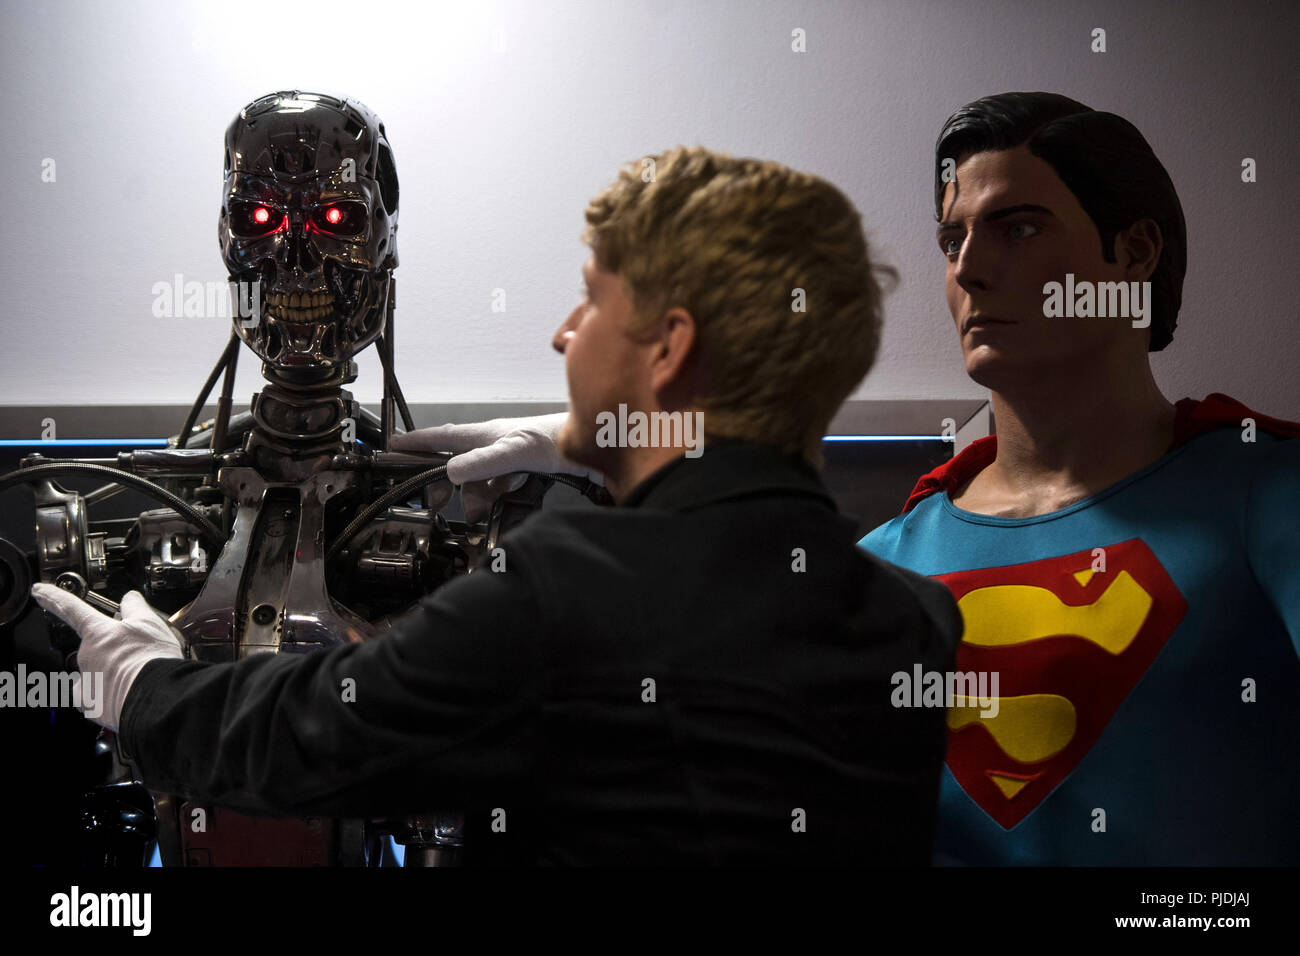 A T-800 Endoskeleton used in Terminator 2: Judgement Day (1991) and a Superman costume used by Christopher Reeve in Superman (1978) and Superman II (1980) at the Prop Store film memorabilia exhibition at the BFI IMAX at Waterloo in central London. - Stock Image